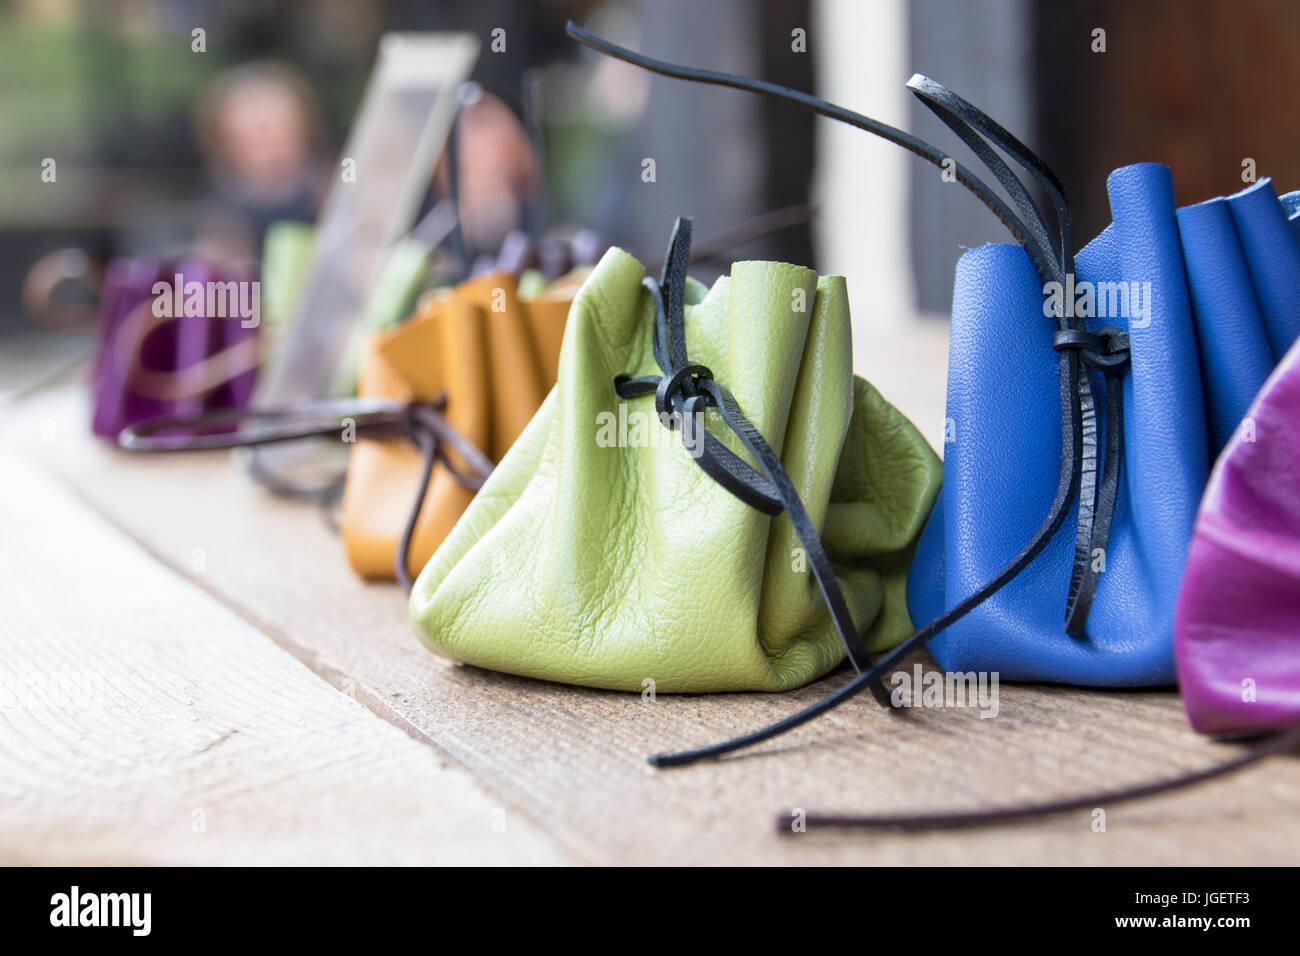 handmade leather purses in bright colors on display in an outdoor market in the Czech Republic - Stock Image